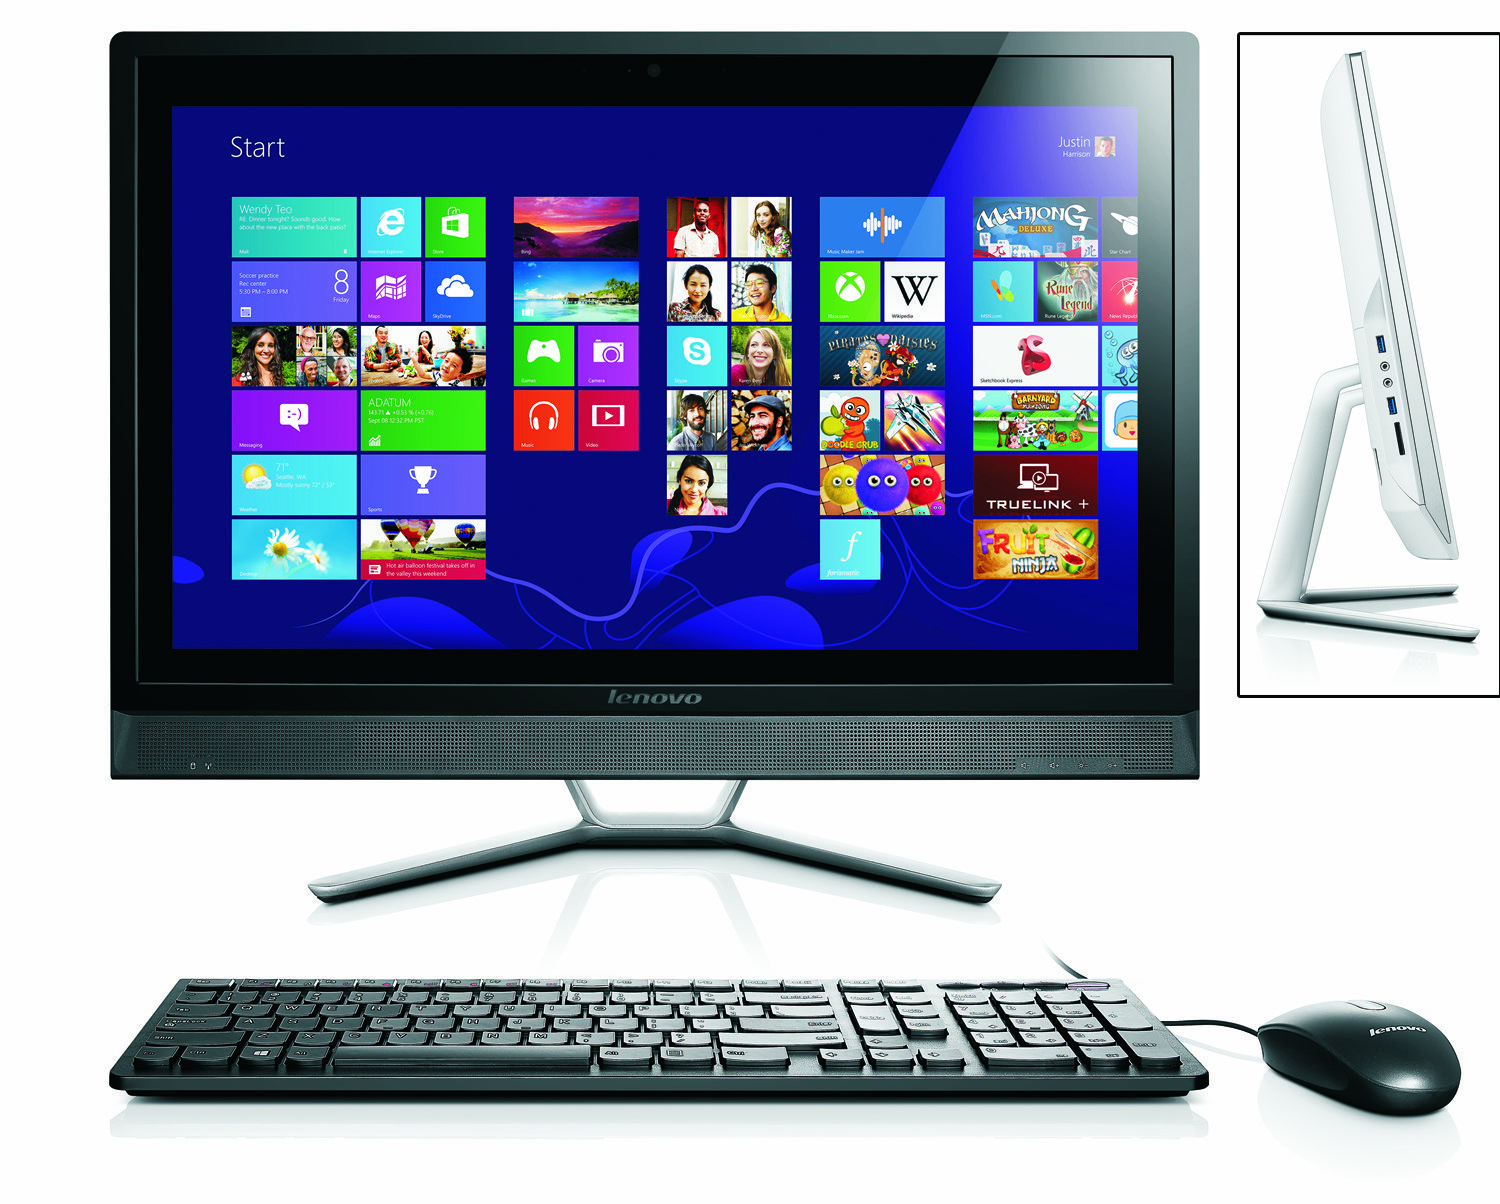 Lenovo C560 Touch All-in-One